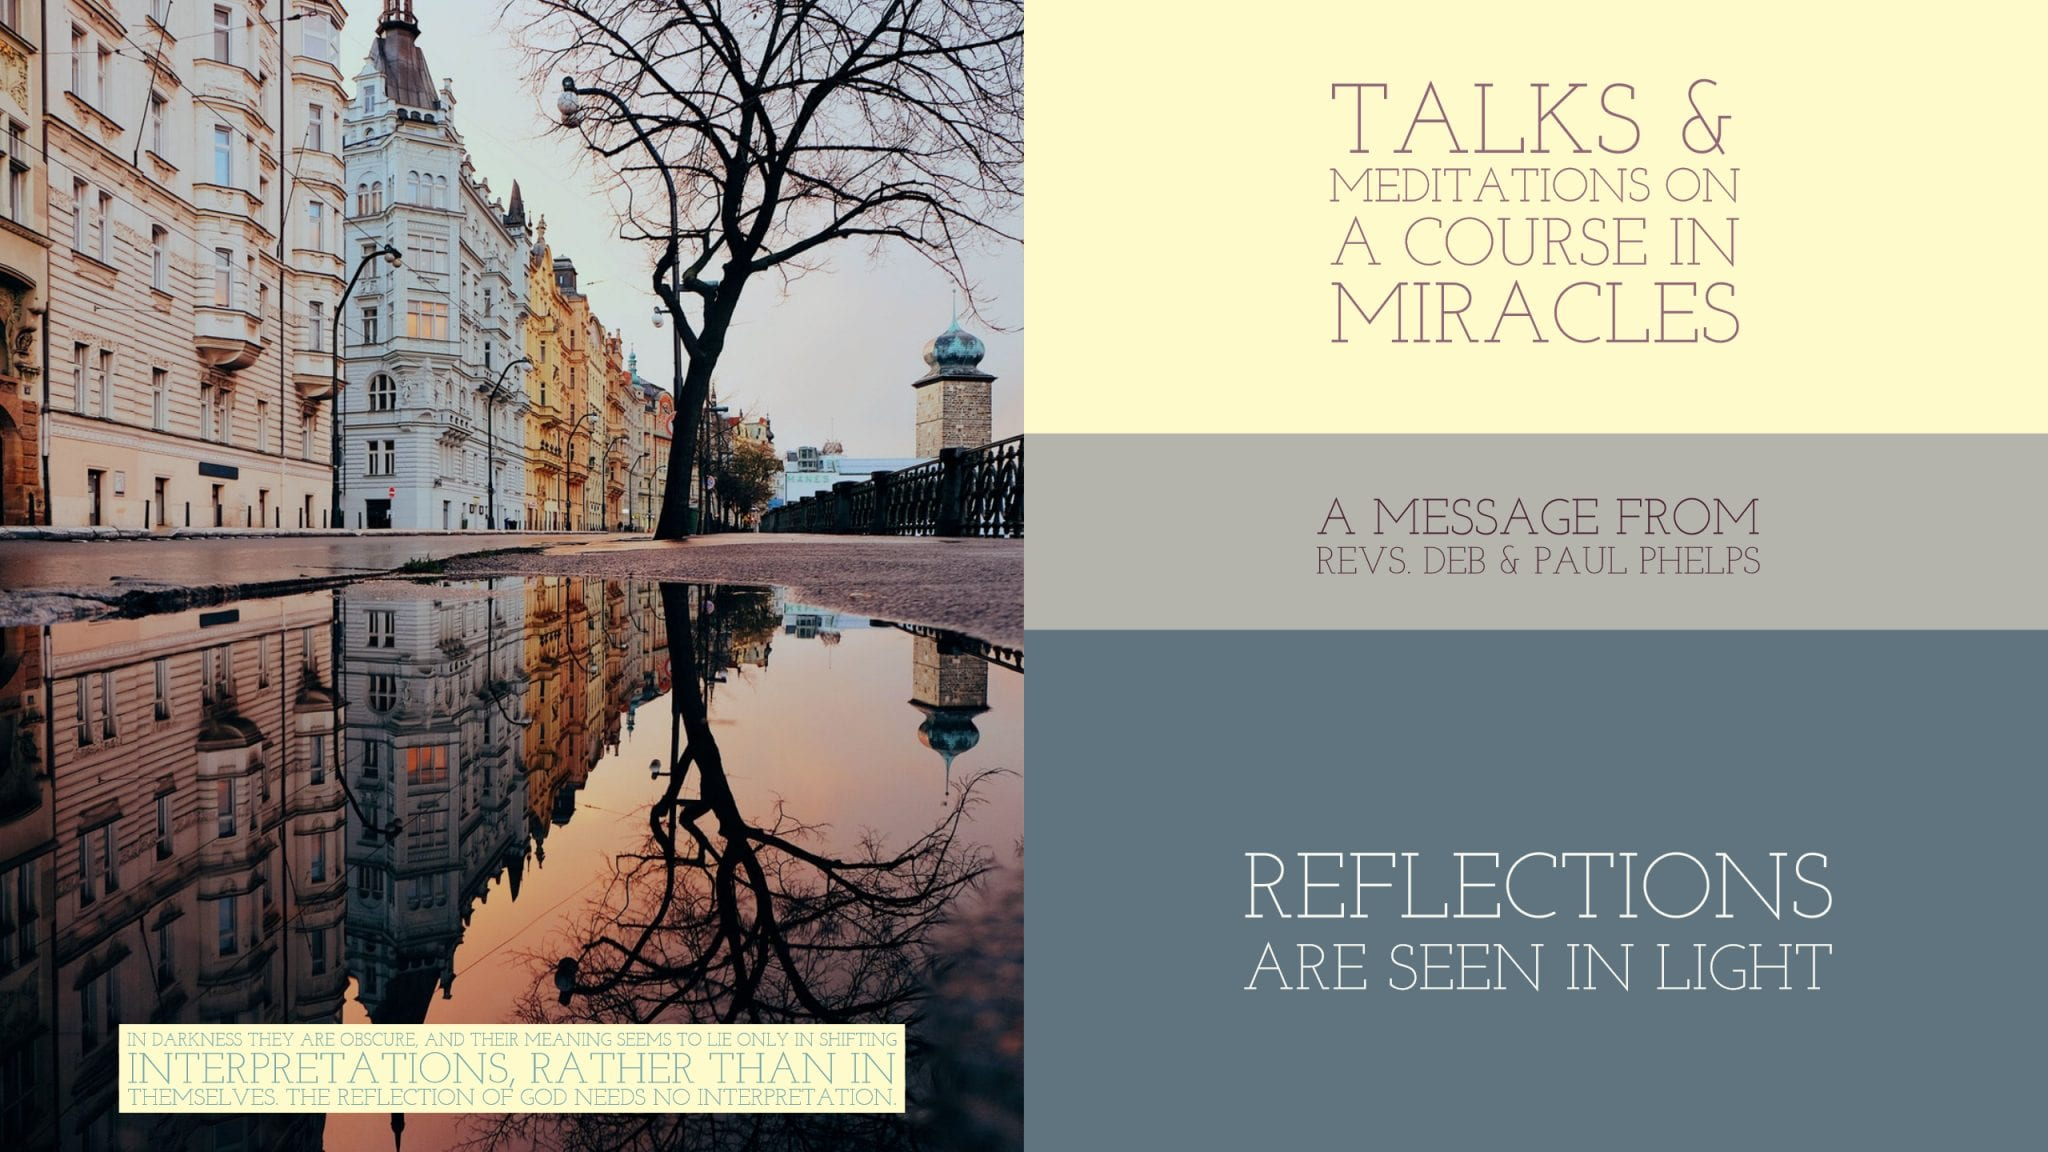 Reflections Are Seen In Light A Course In Miracles With MiraclesOne